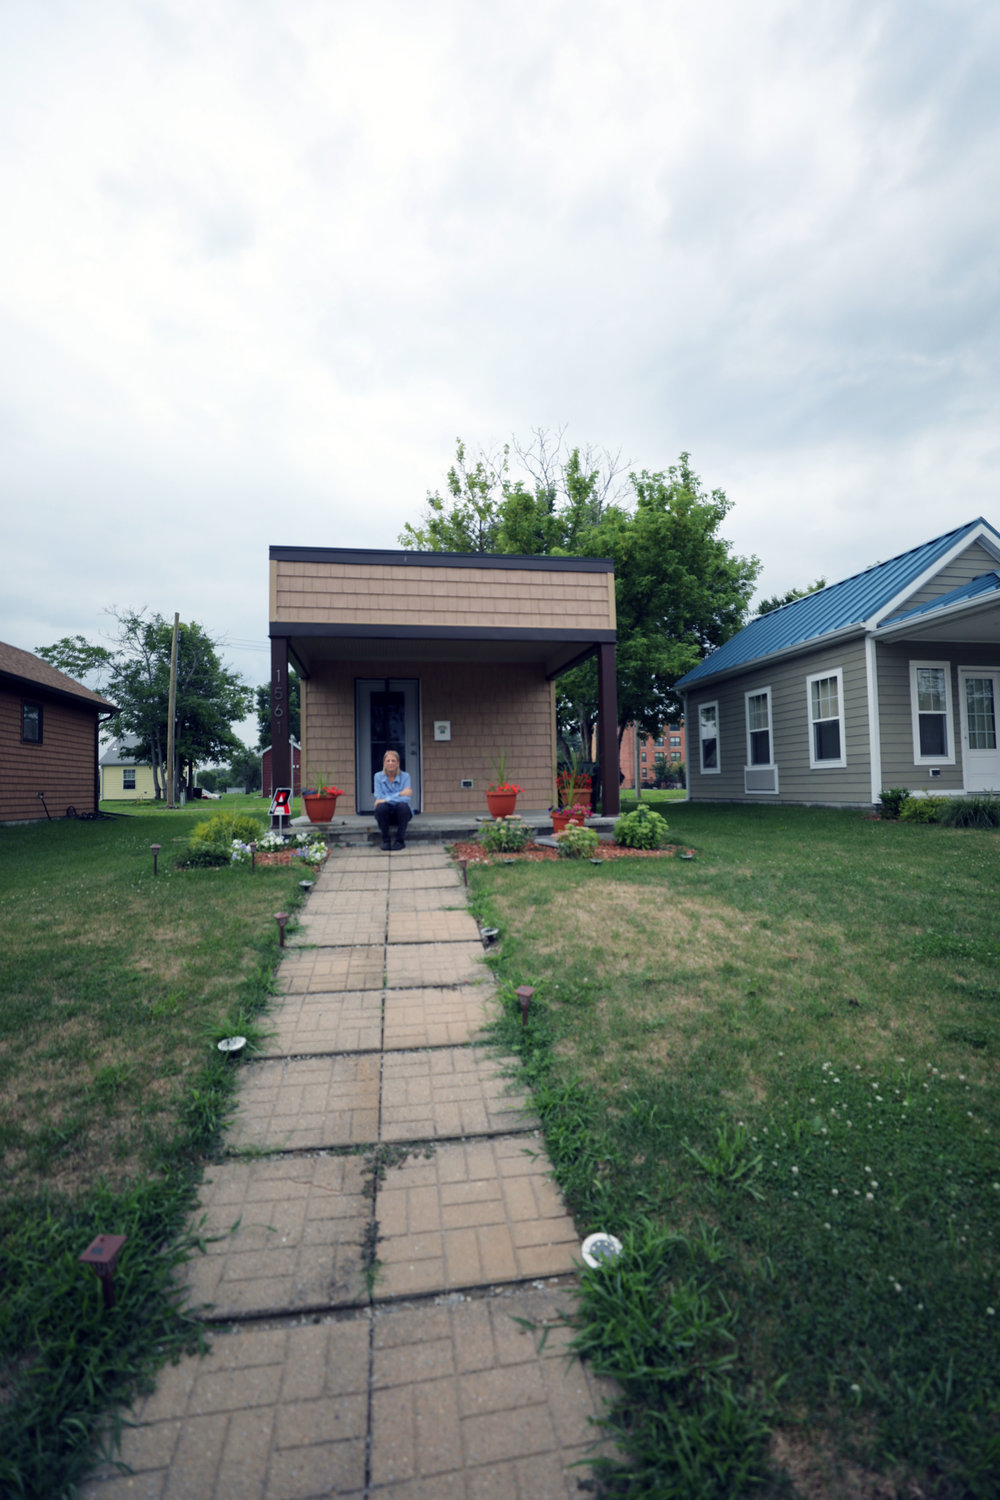 Tiny Homes Detroit: NABJ 2018 Student Multimedia Project